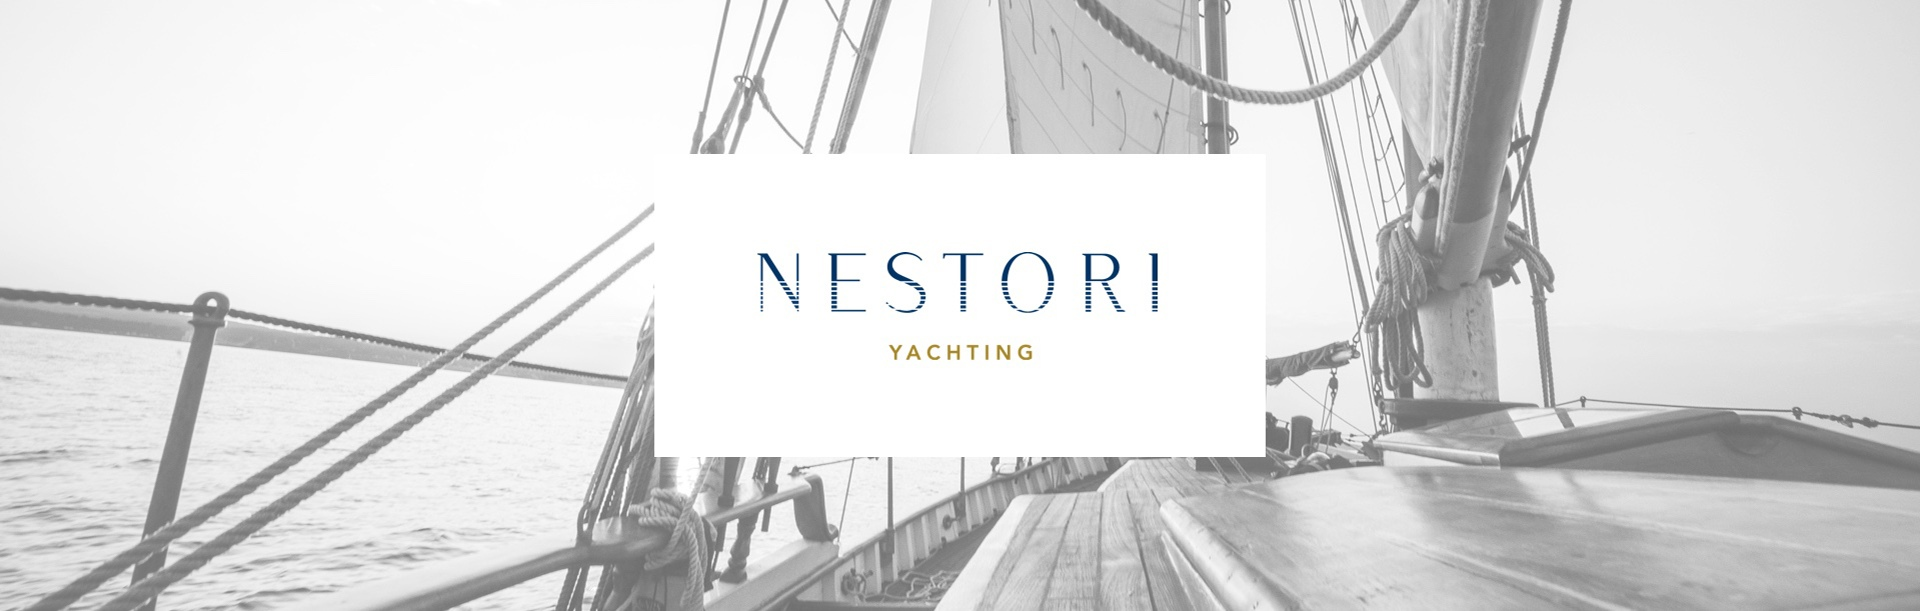 Yachting_company_brand_identity_by_Designbite_banner_4